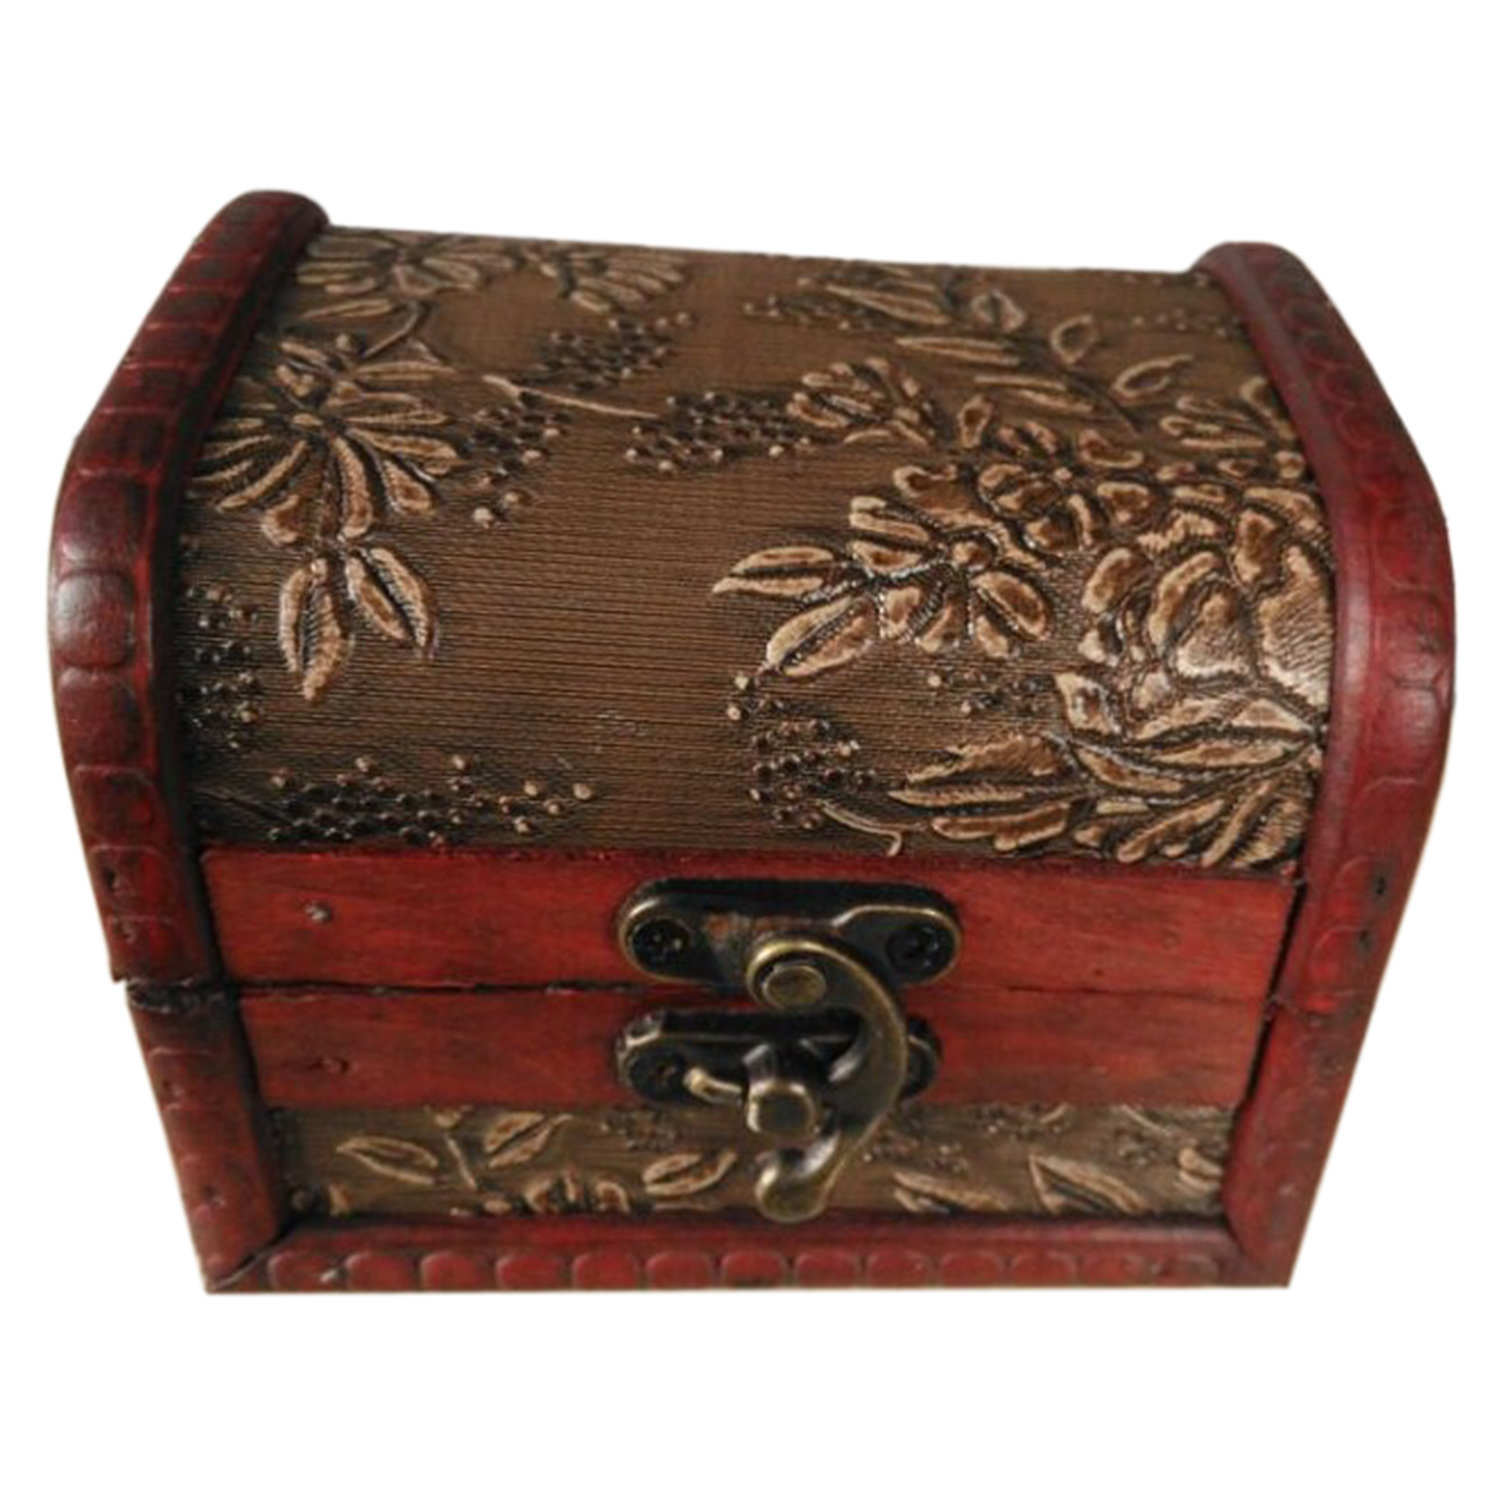 Vintage Style Jewellery Box Antique Style Embossed Flower Jewelry Gift Necklace Wood